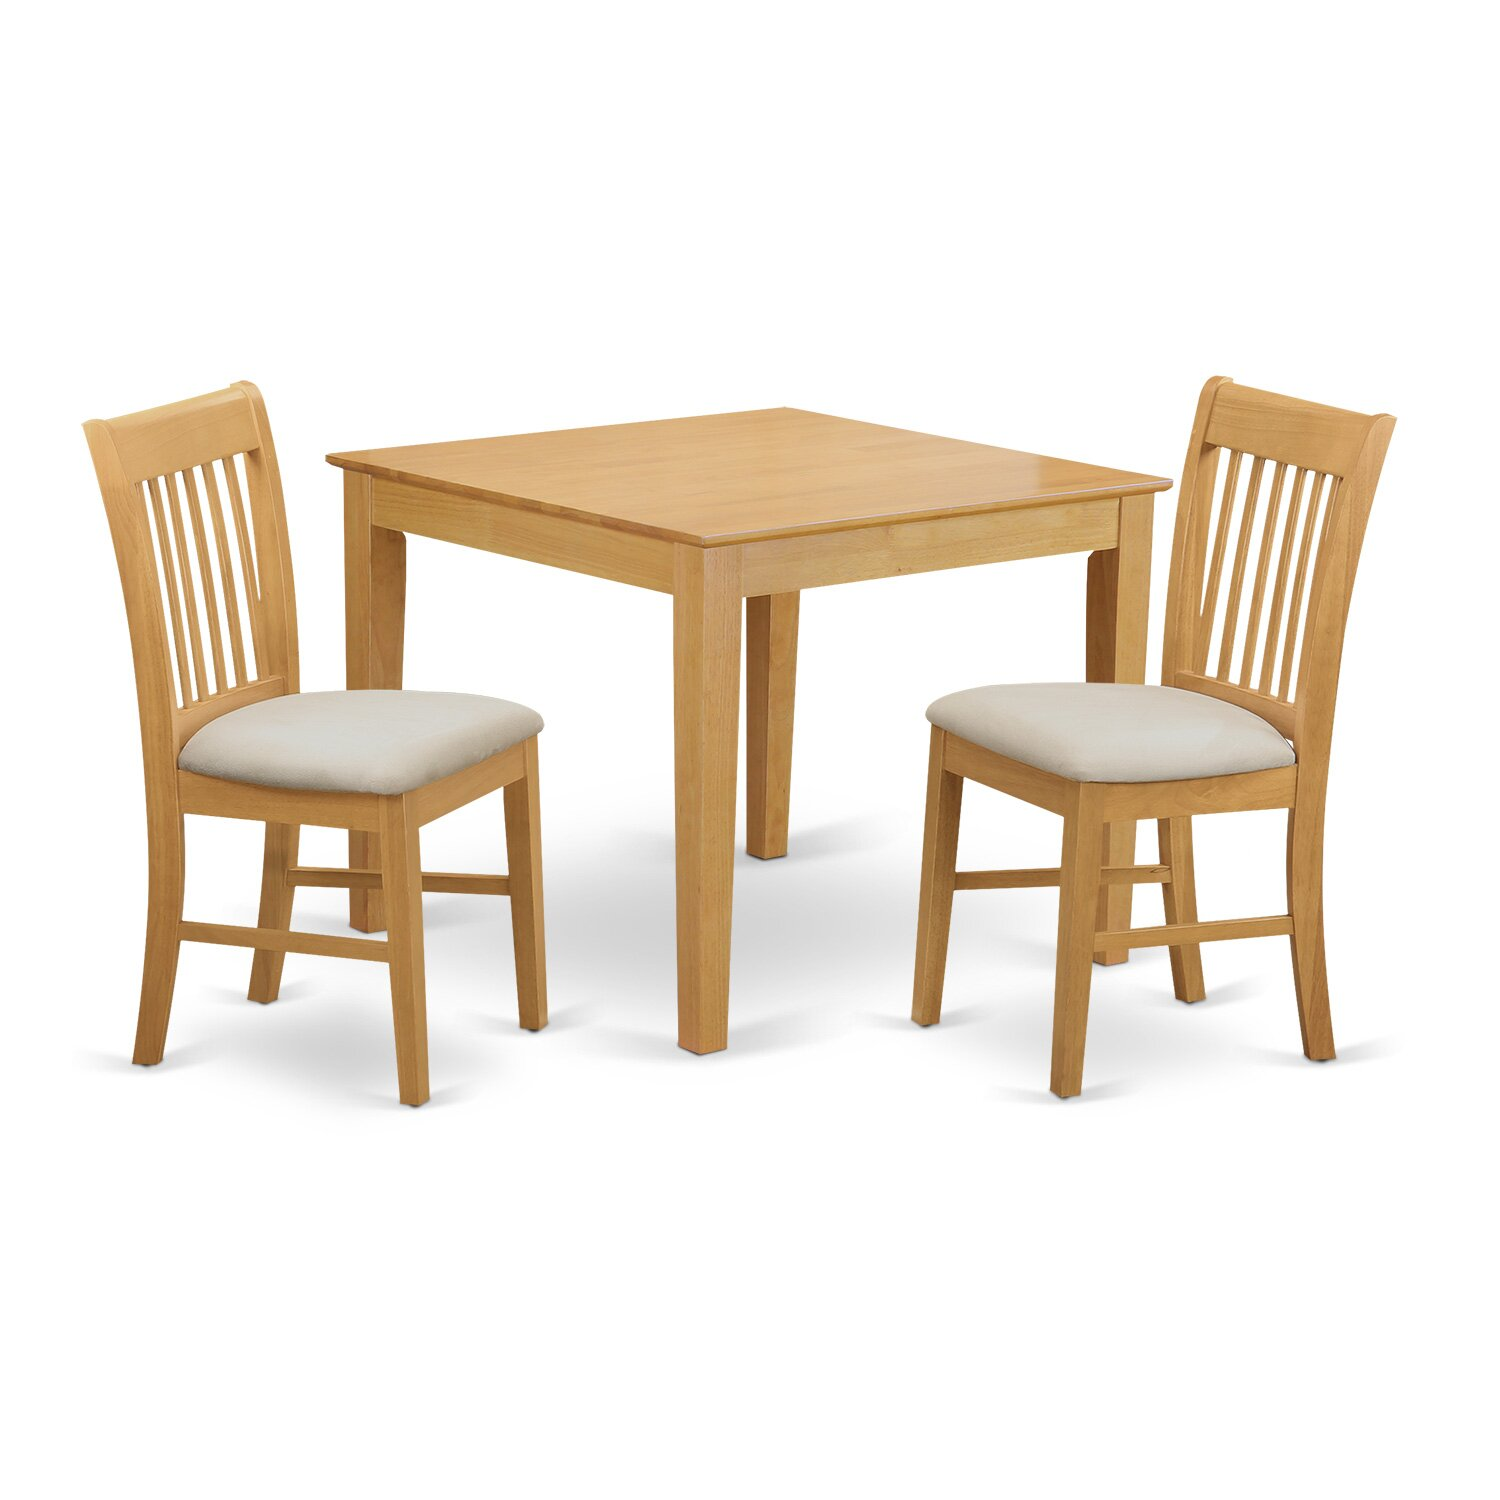 East west oxford 3 piece dining set reviews wayfair for Breakfast sets furniture